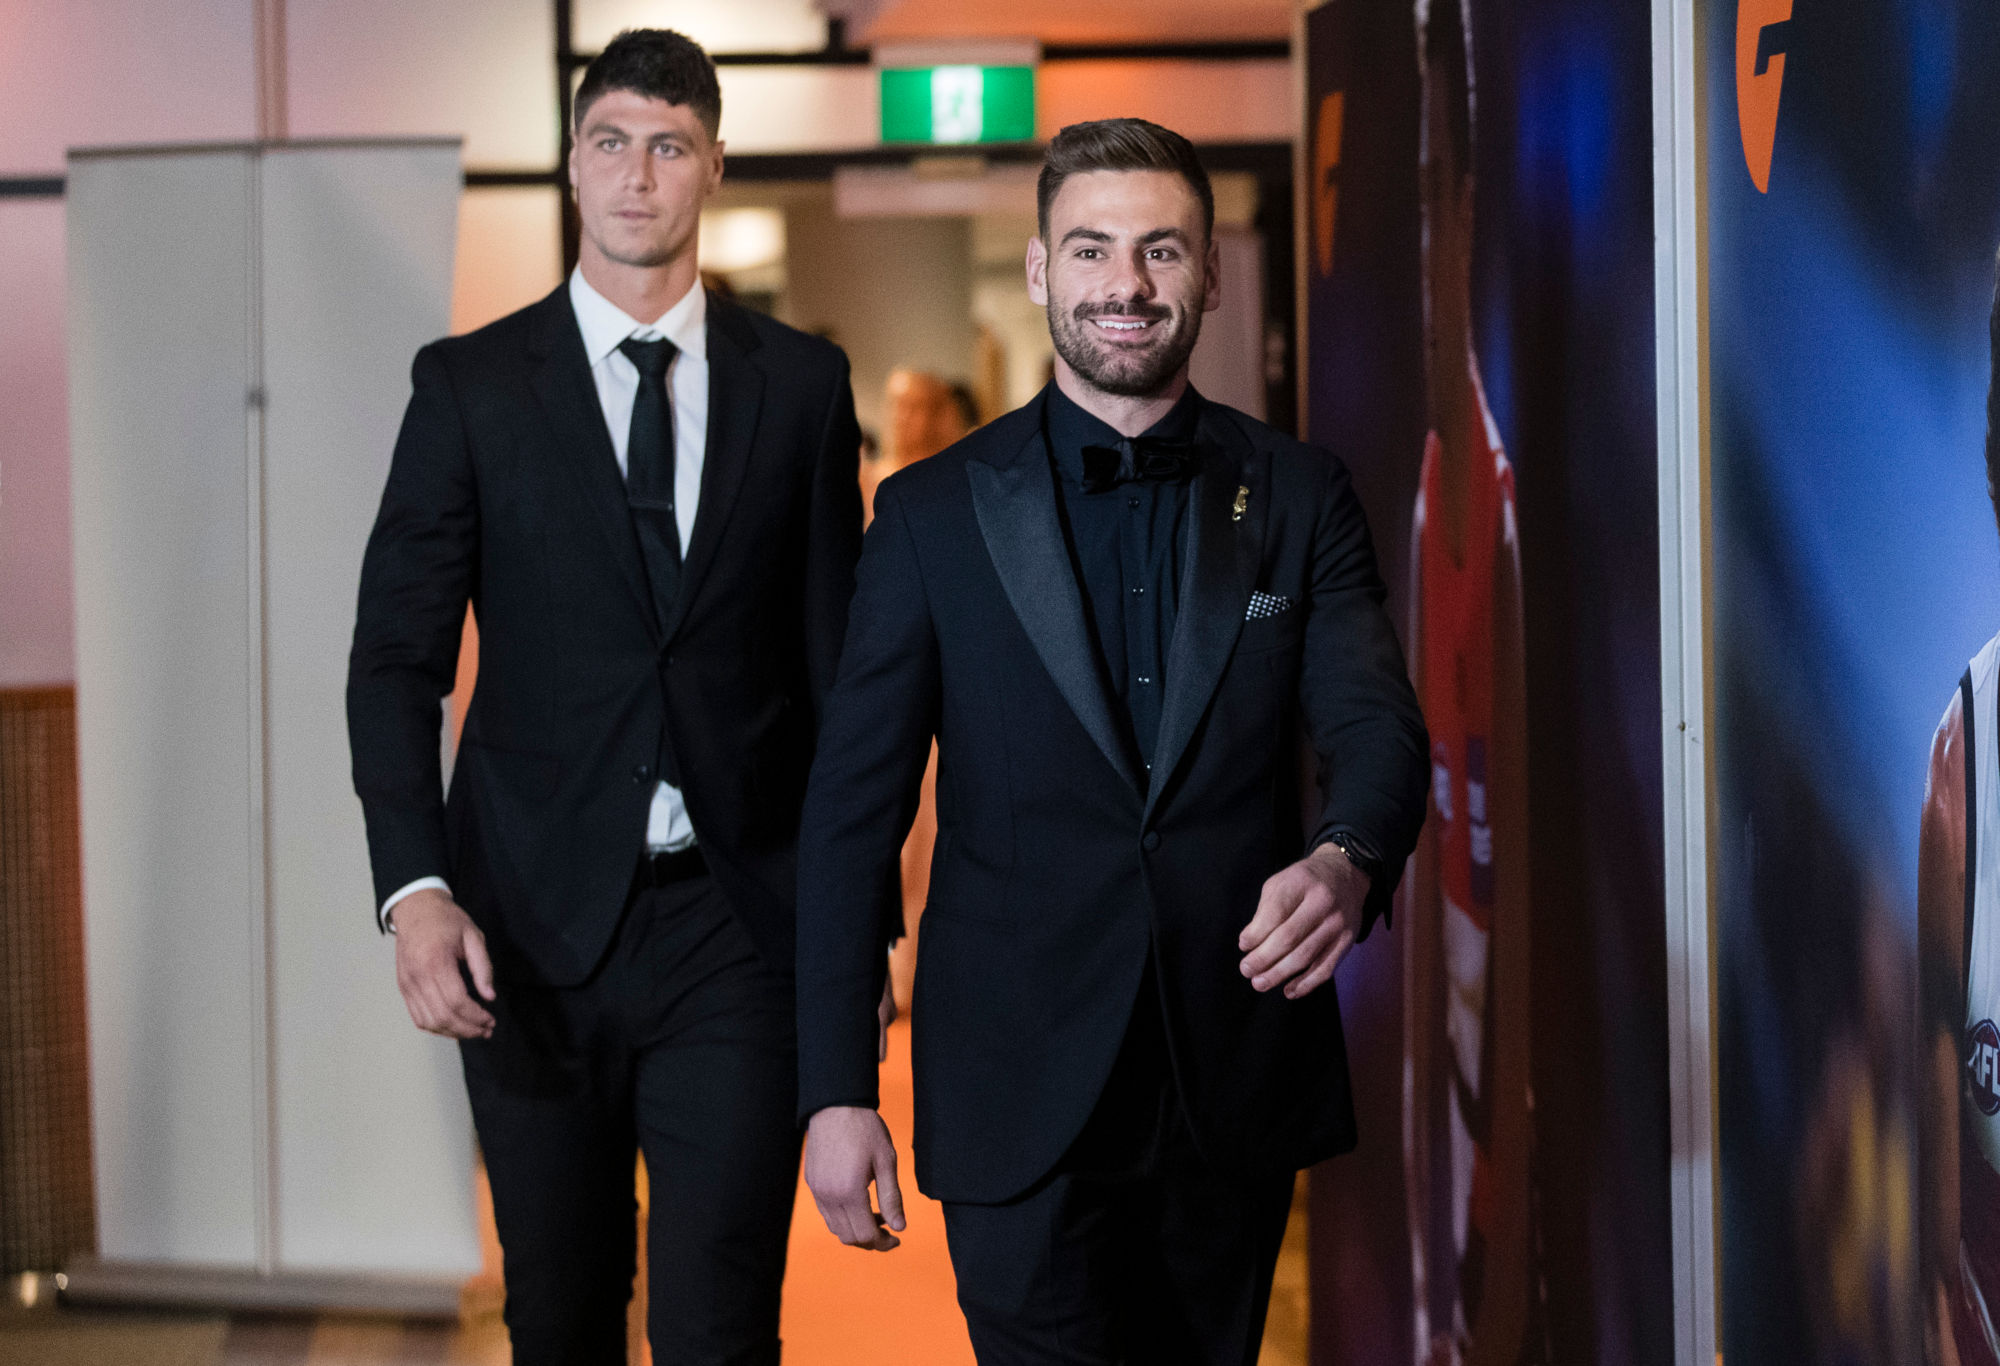 GWS Giants Brownlow Medal Function